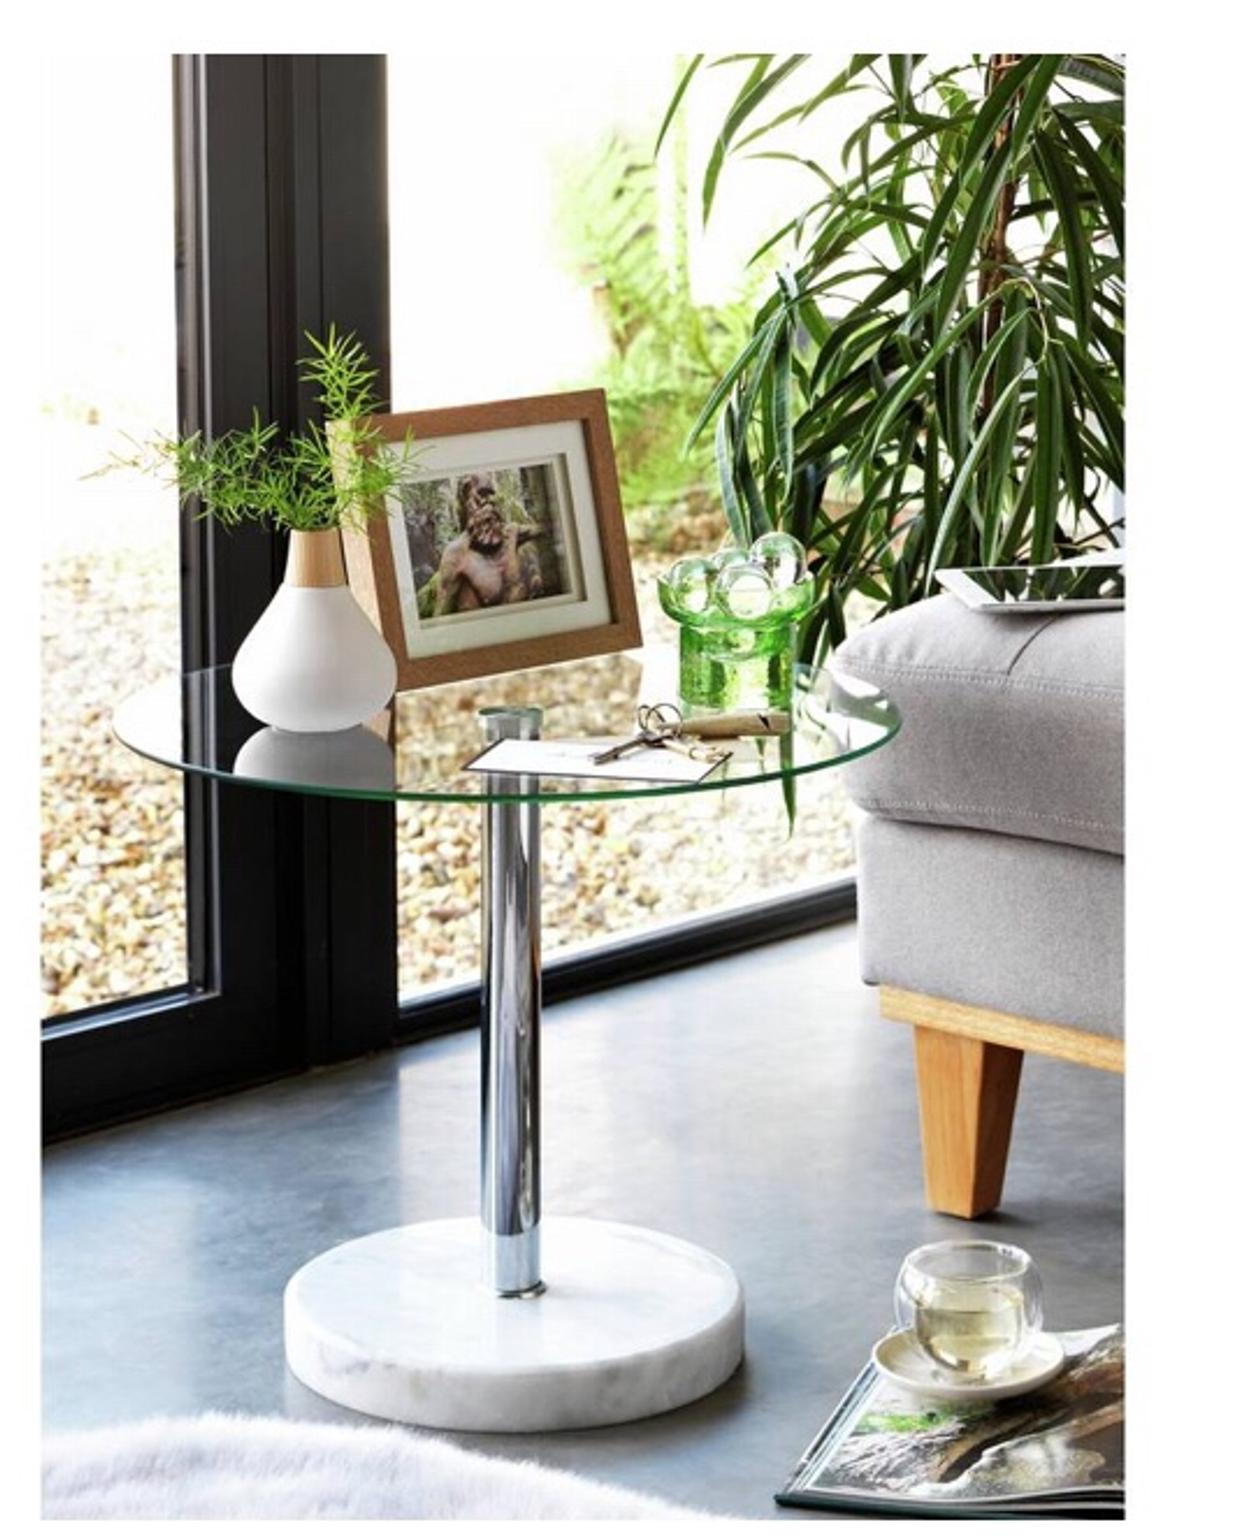 Argos Round Glass And Marble End Table In CF Cardiff For £